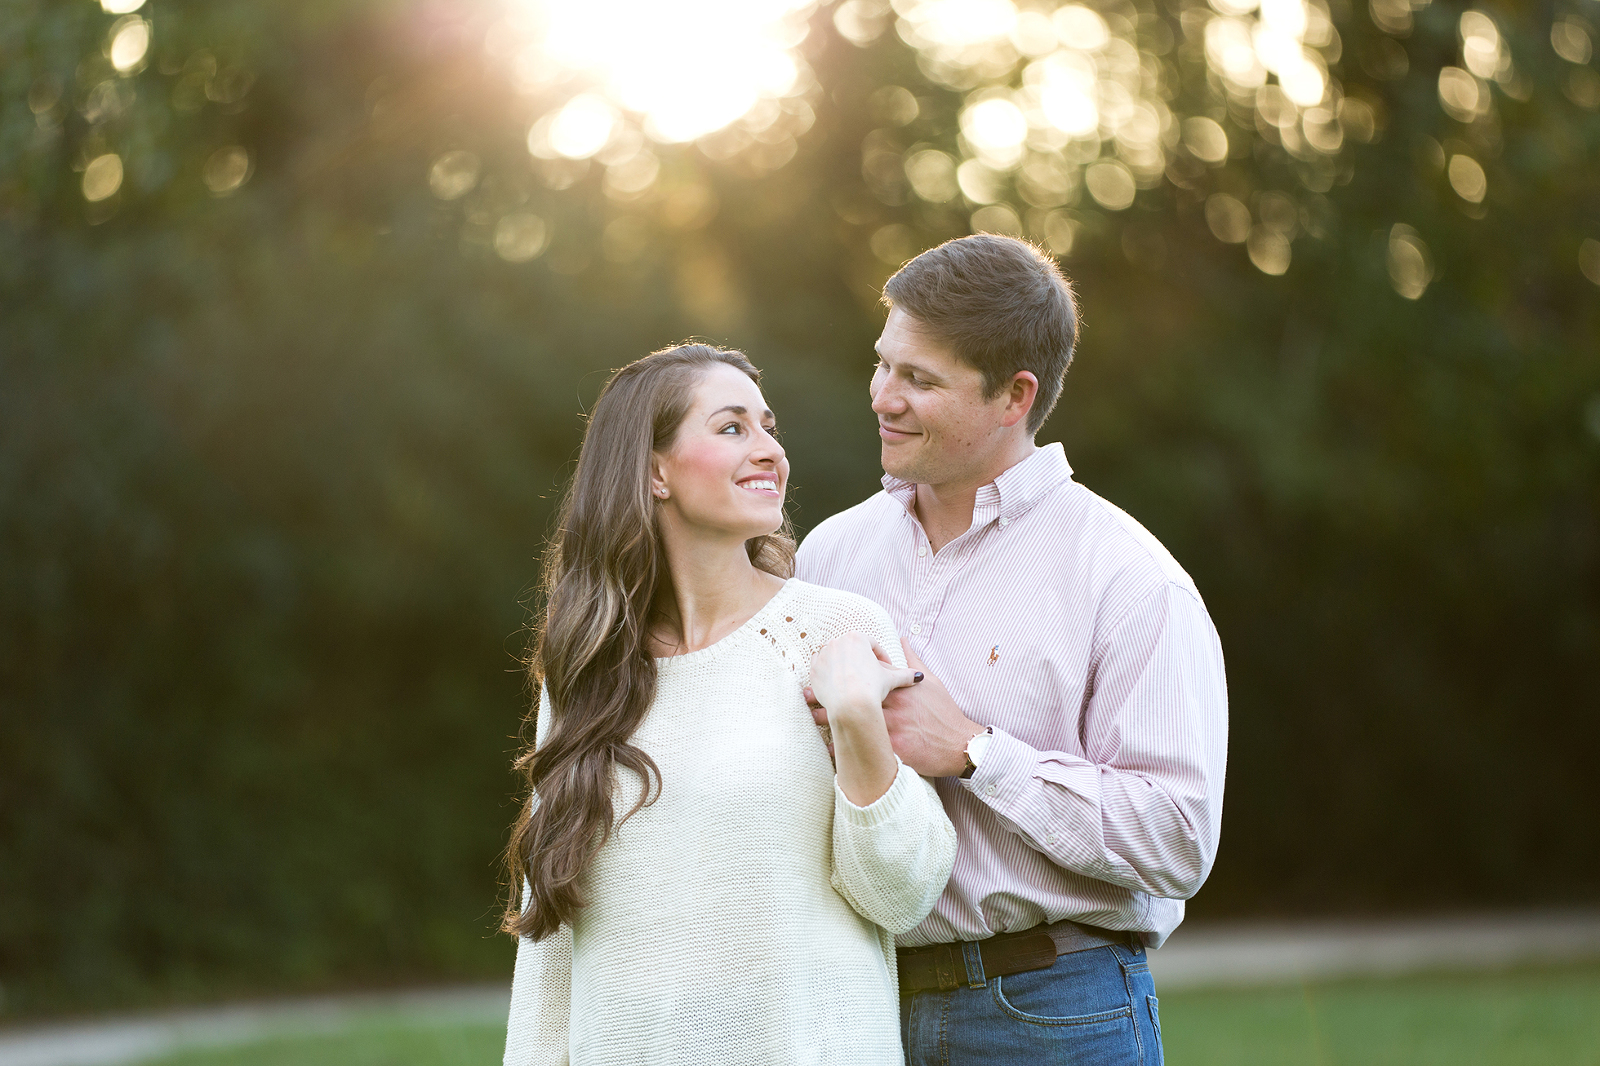 couple smile together in a field during an engagement session